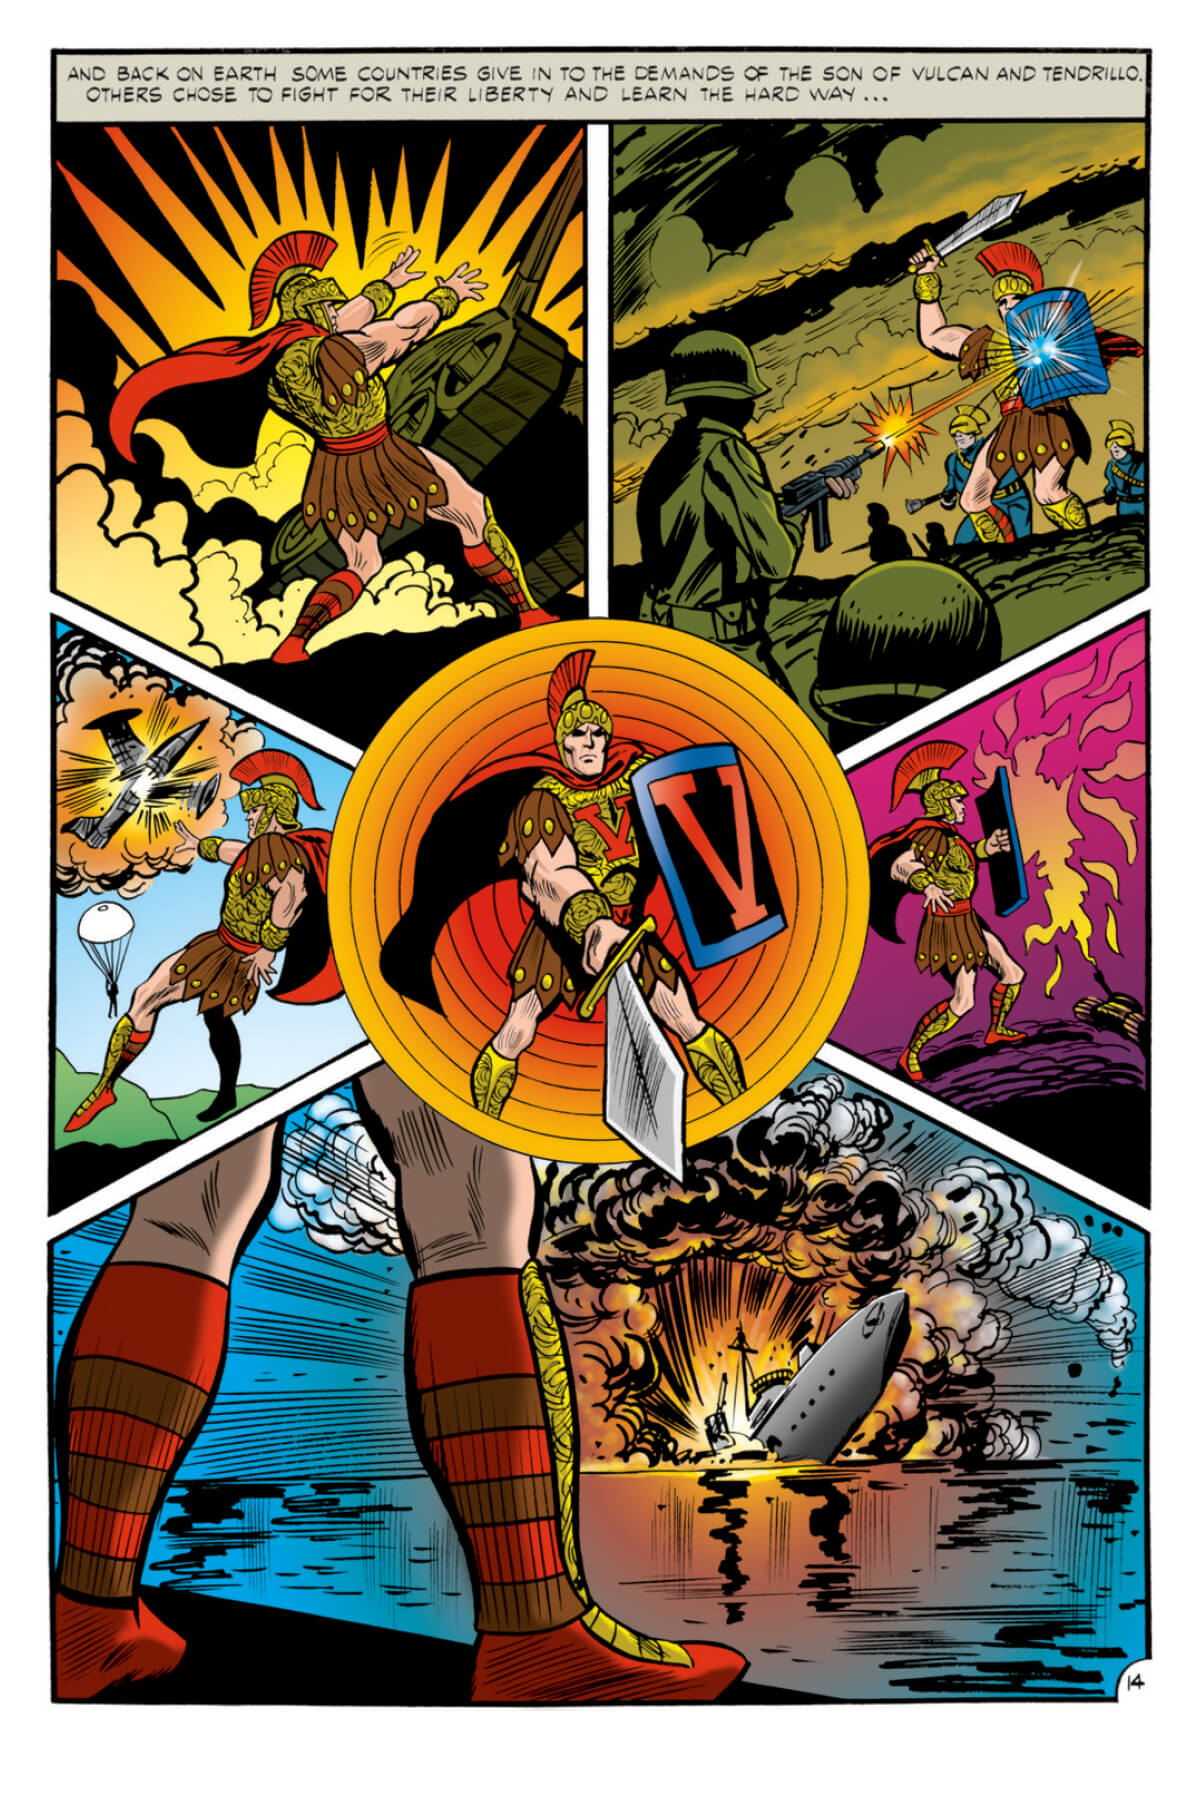 Comic book colouring by Scott Dutton